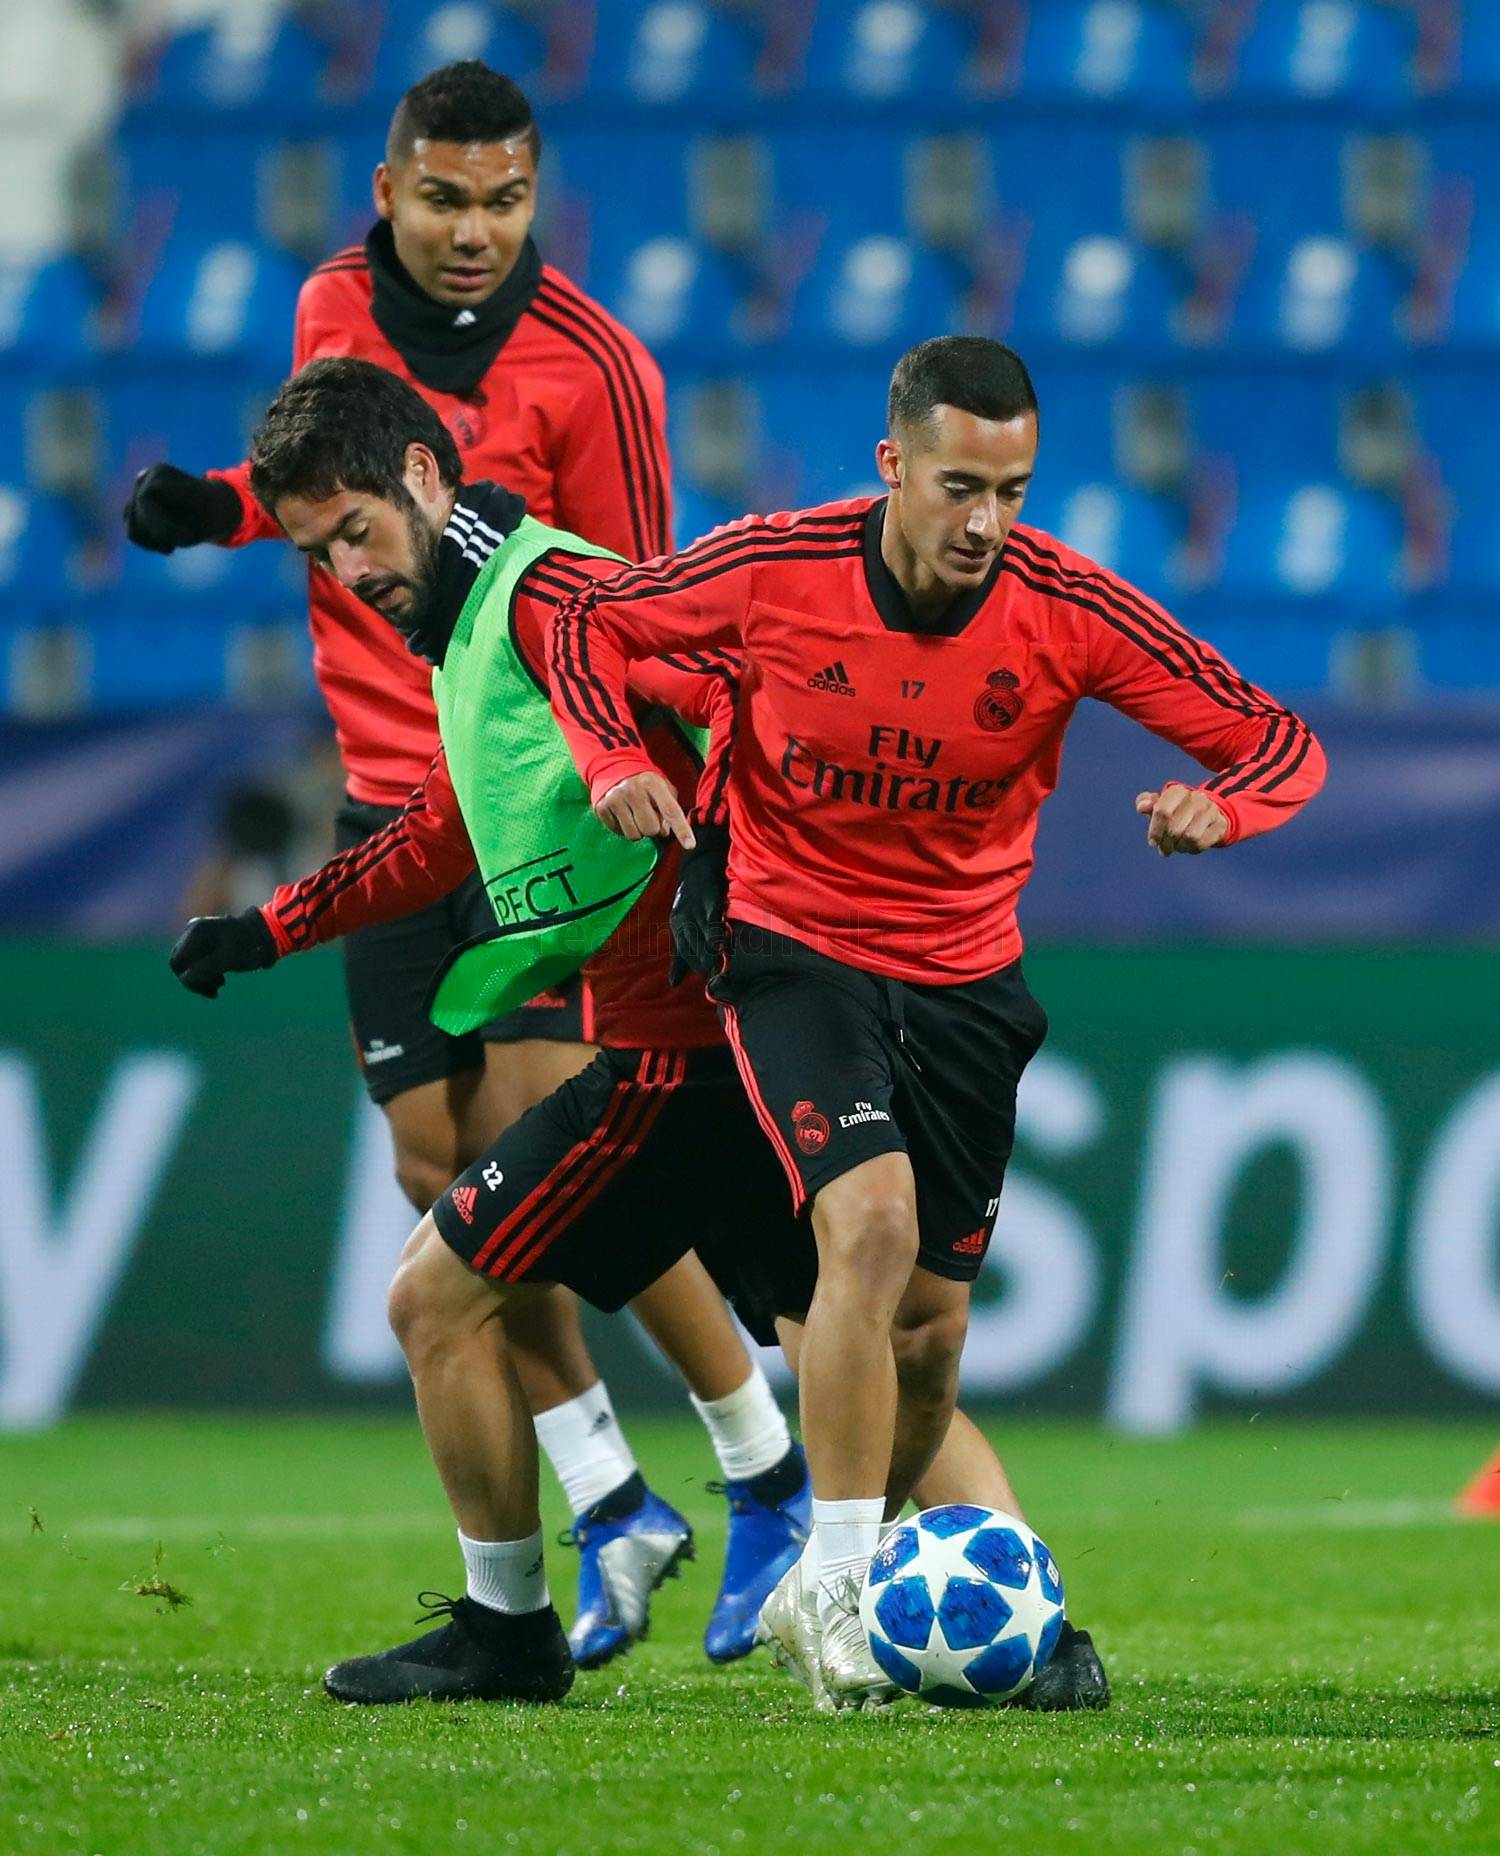 Real Madrid - Entrenamiento del Real Madrid - 06-11-2018